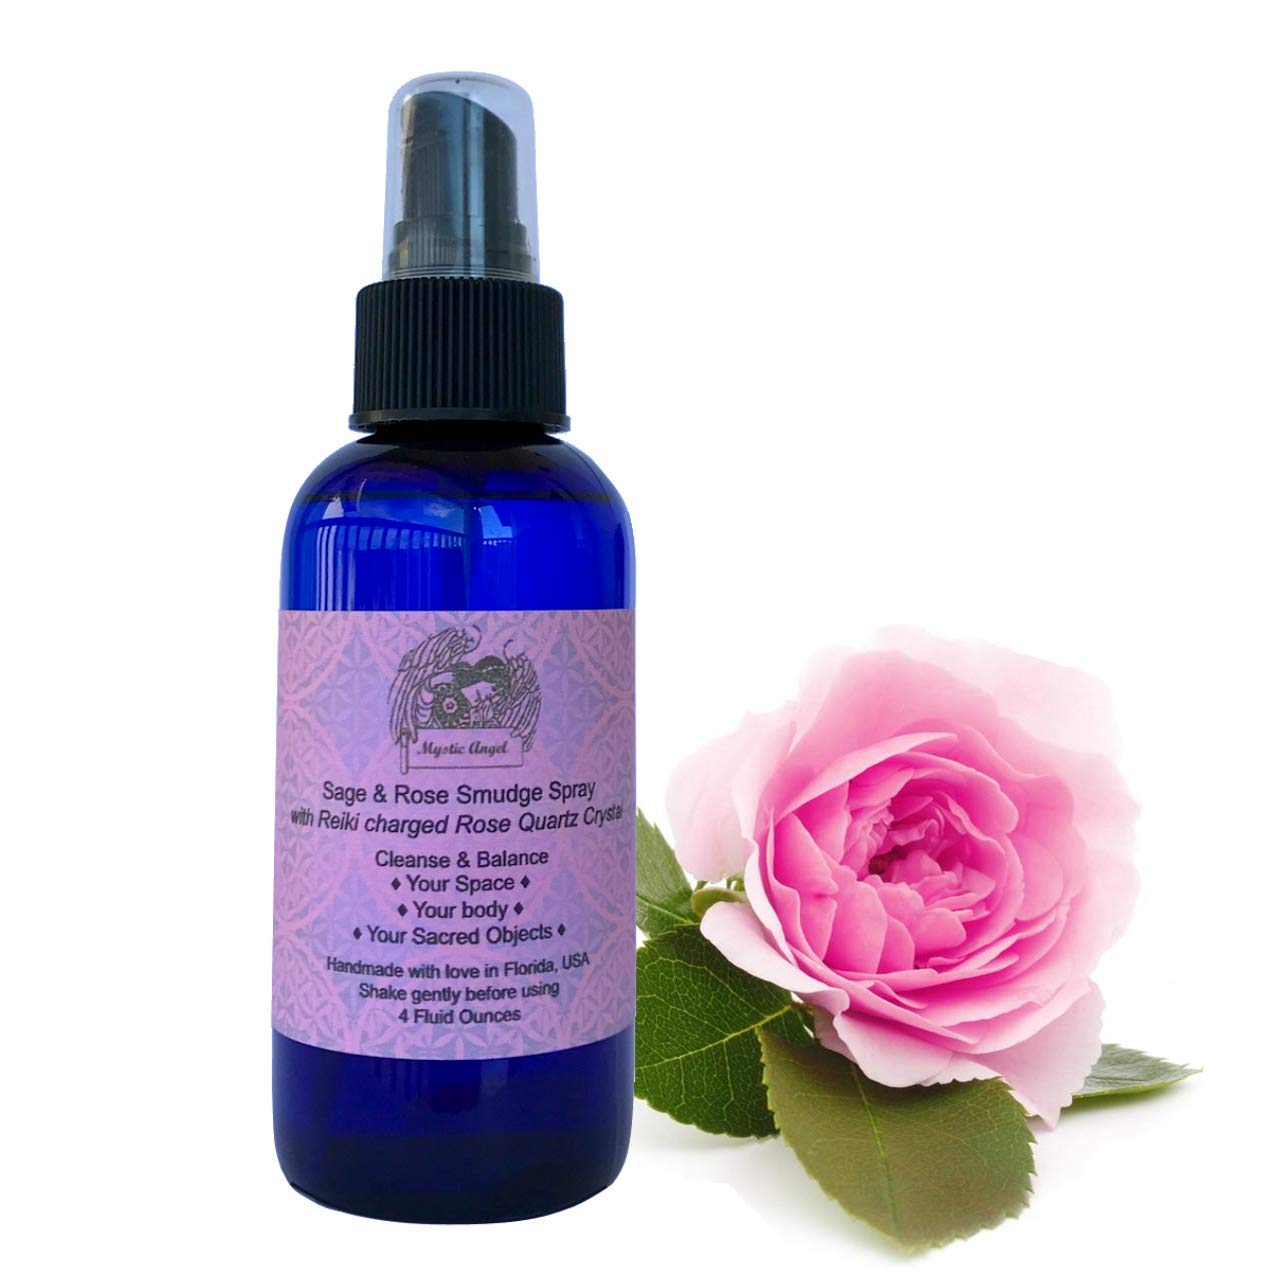 White Sage & Rose Smudge Spray (4 oz.) with Reiki Charged Rose Quartz Crystal & Archangel Chamuel Essence, 4 Oz by Mystic Angel (Image #1)